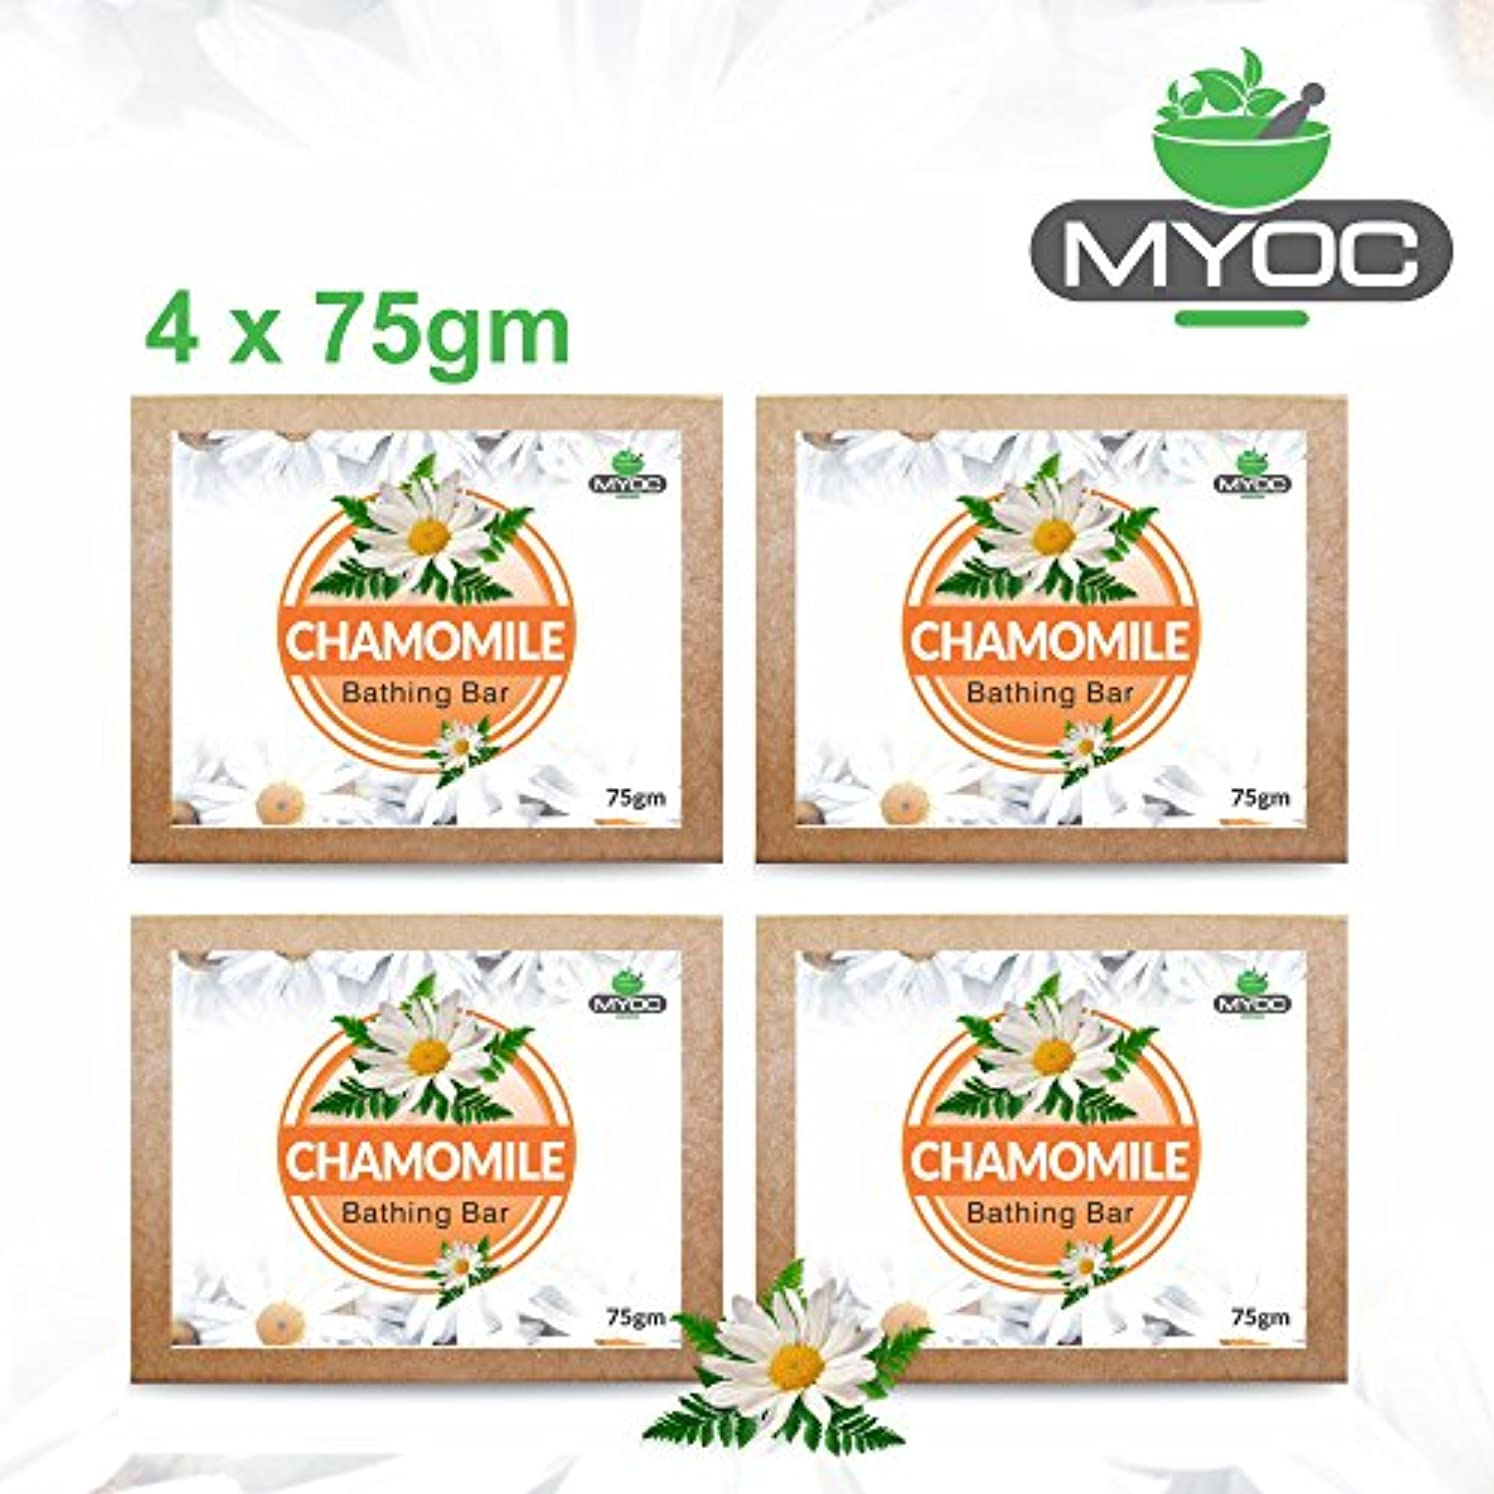 言語テセウス補充Chamomile Extract, Vitamin E and Glycerine soap for sensitive skin, dry skin and eczema 75gm x 4 Pack